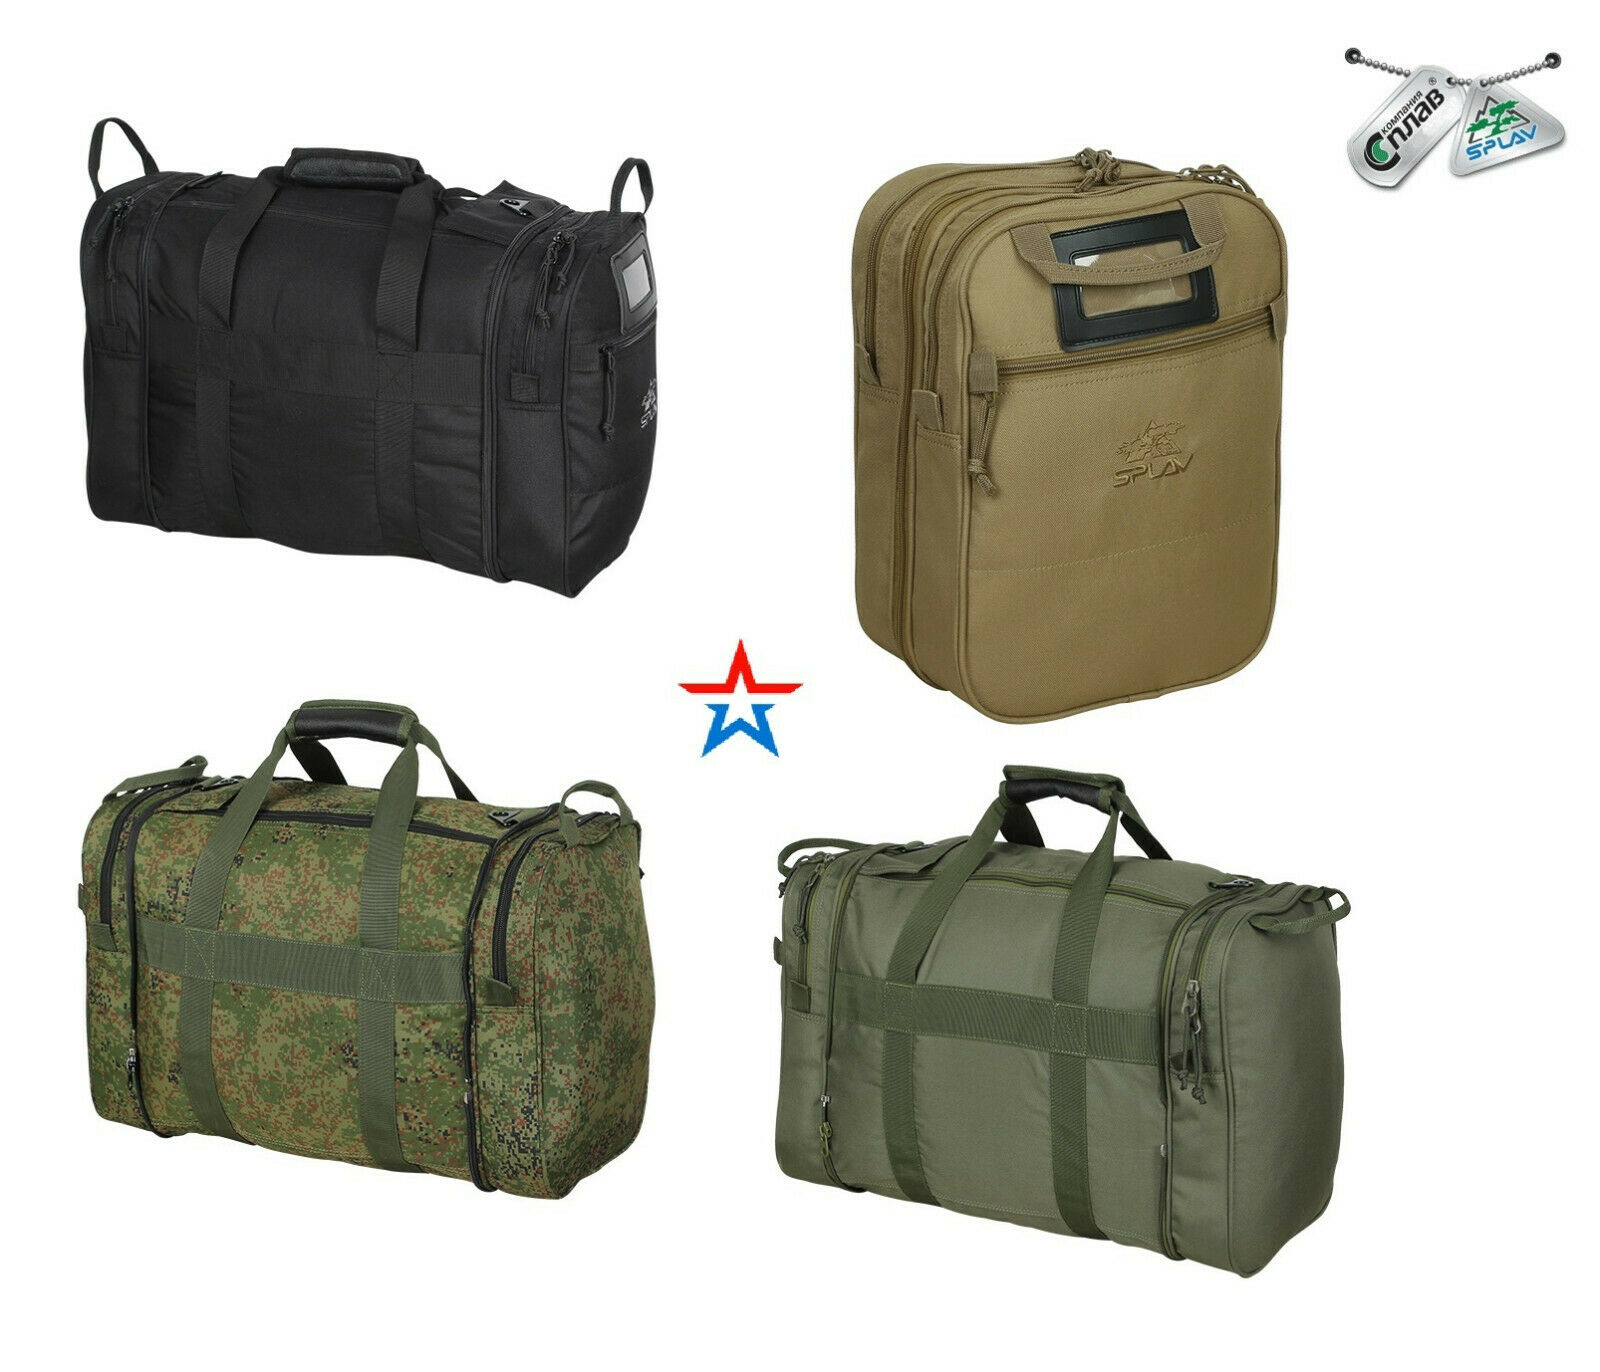 NWT Russian Army Officer's Small Foldable Bag  Compact Outdoor Camping Travel Bag  hot limited edition